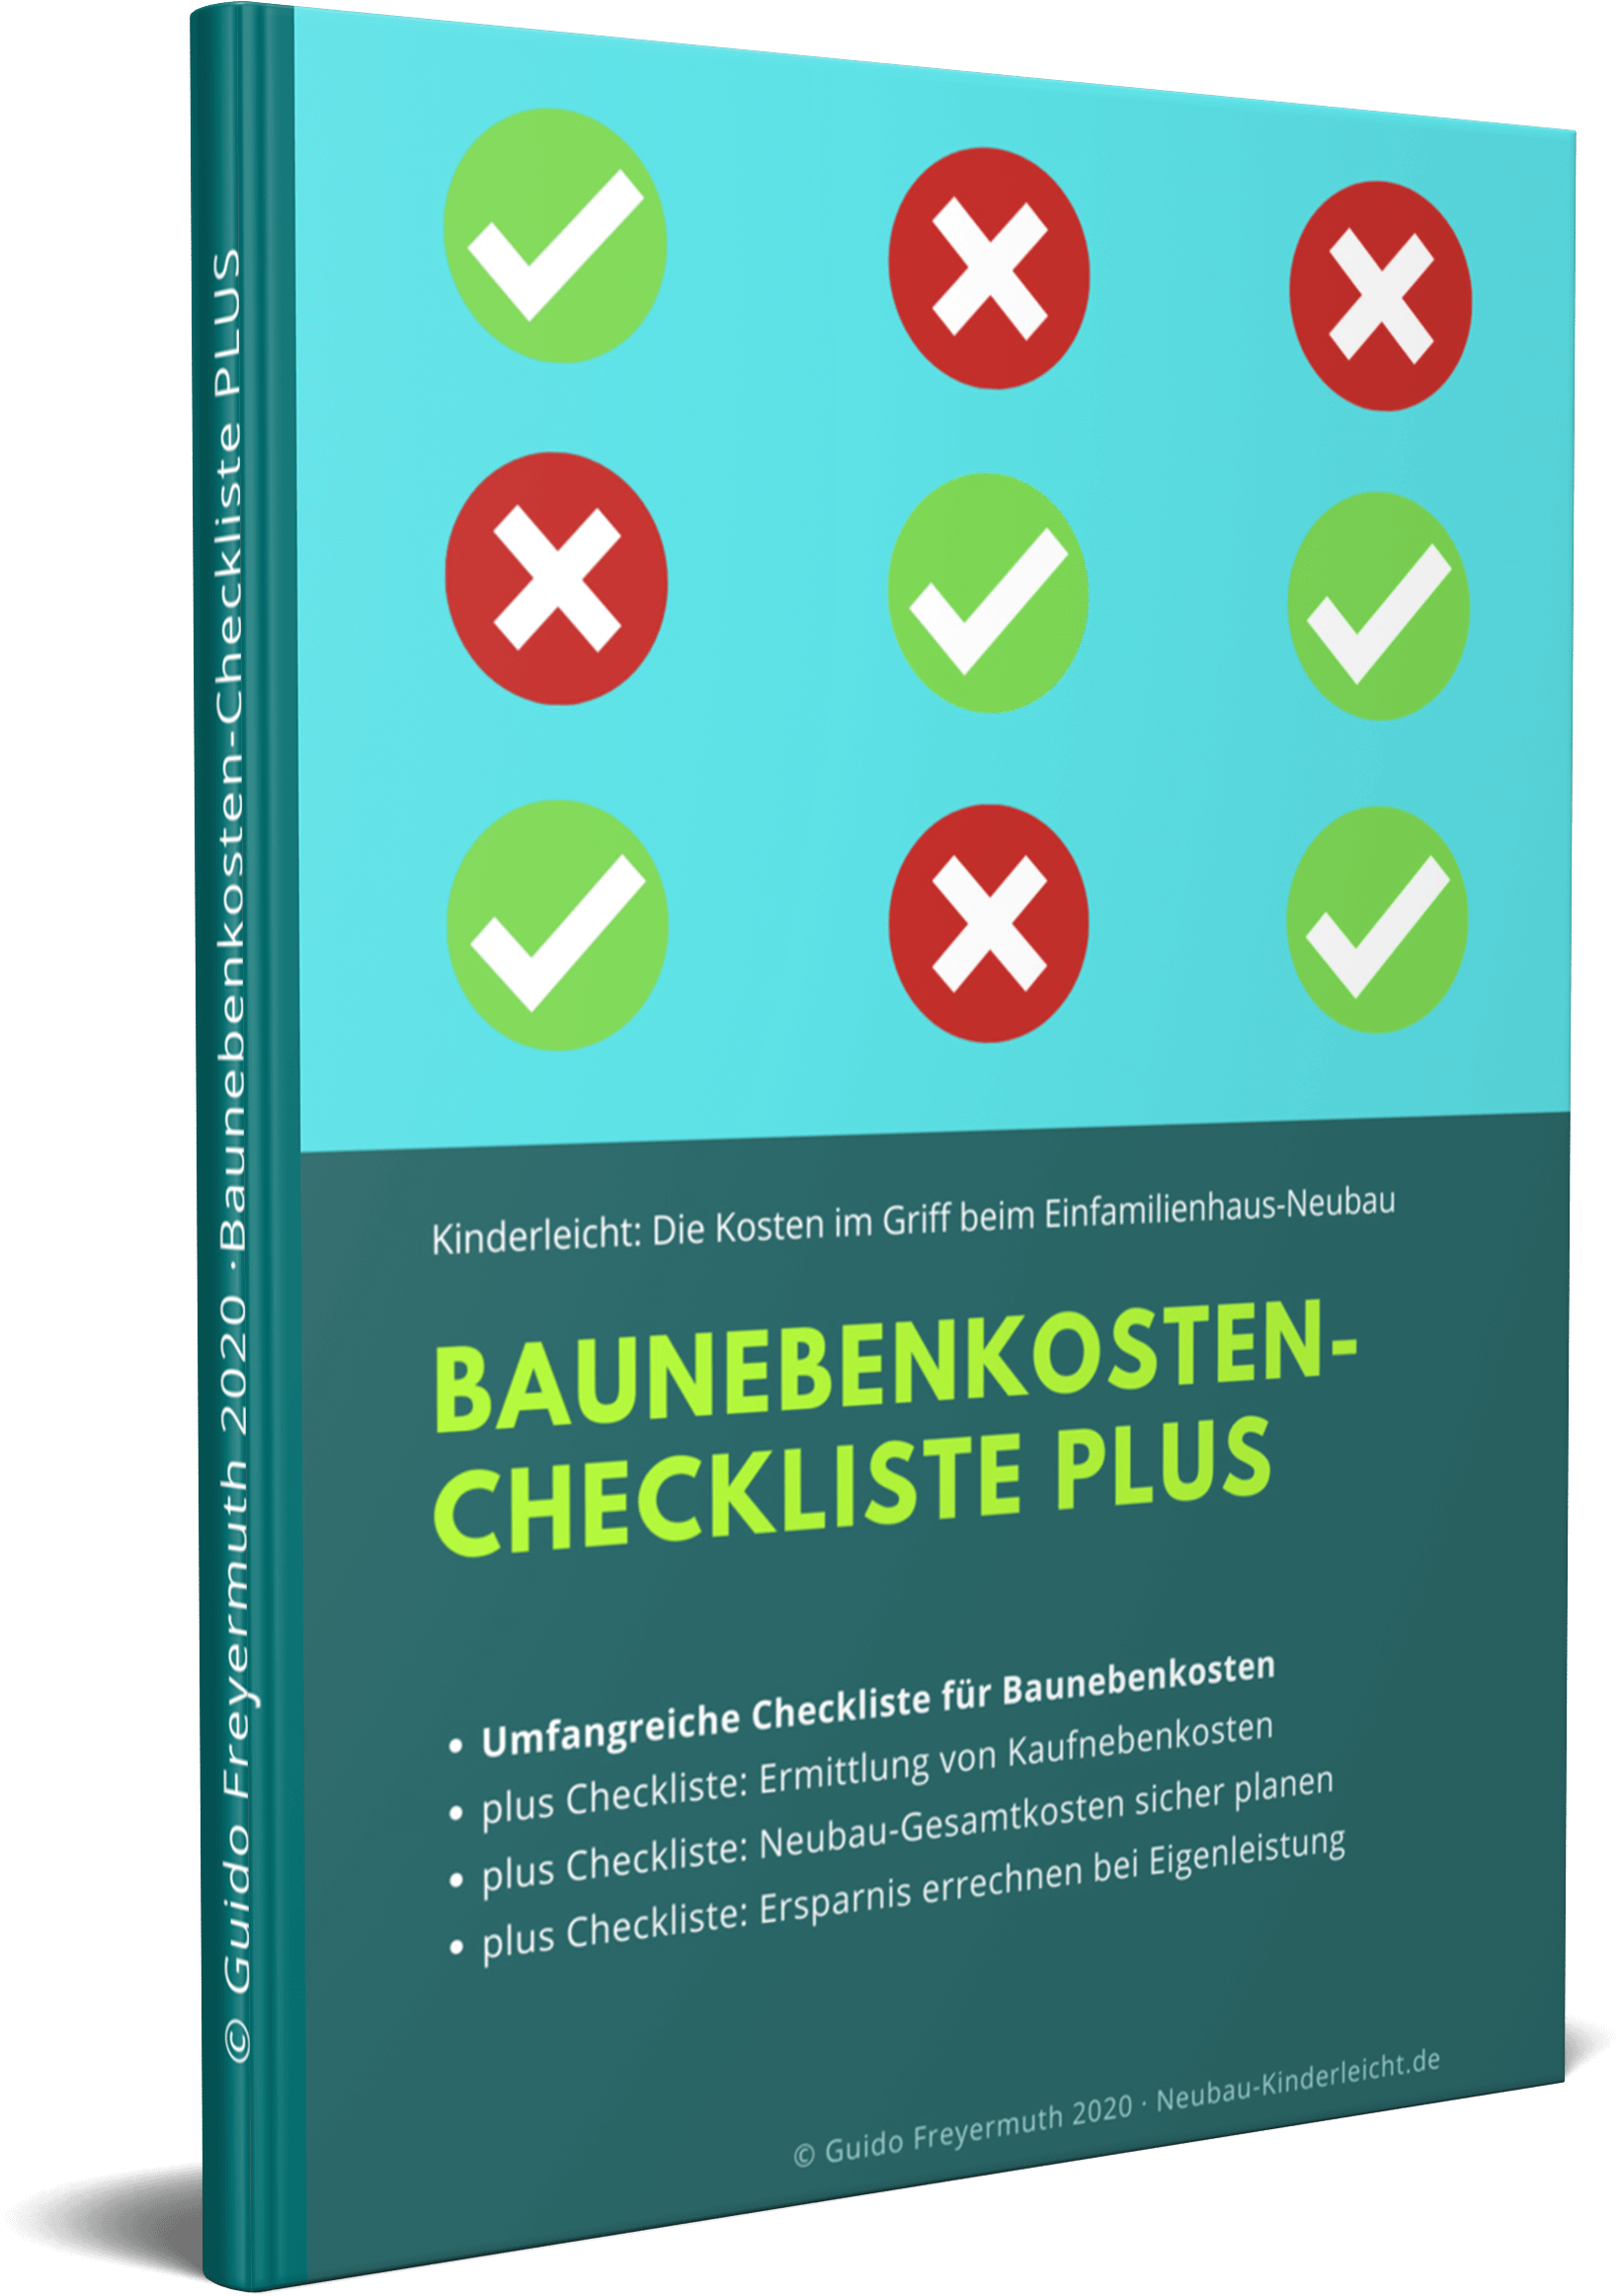 Baunebenkosten-Checkliste PLUS Gratis zum Download